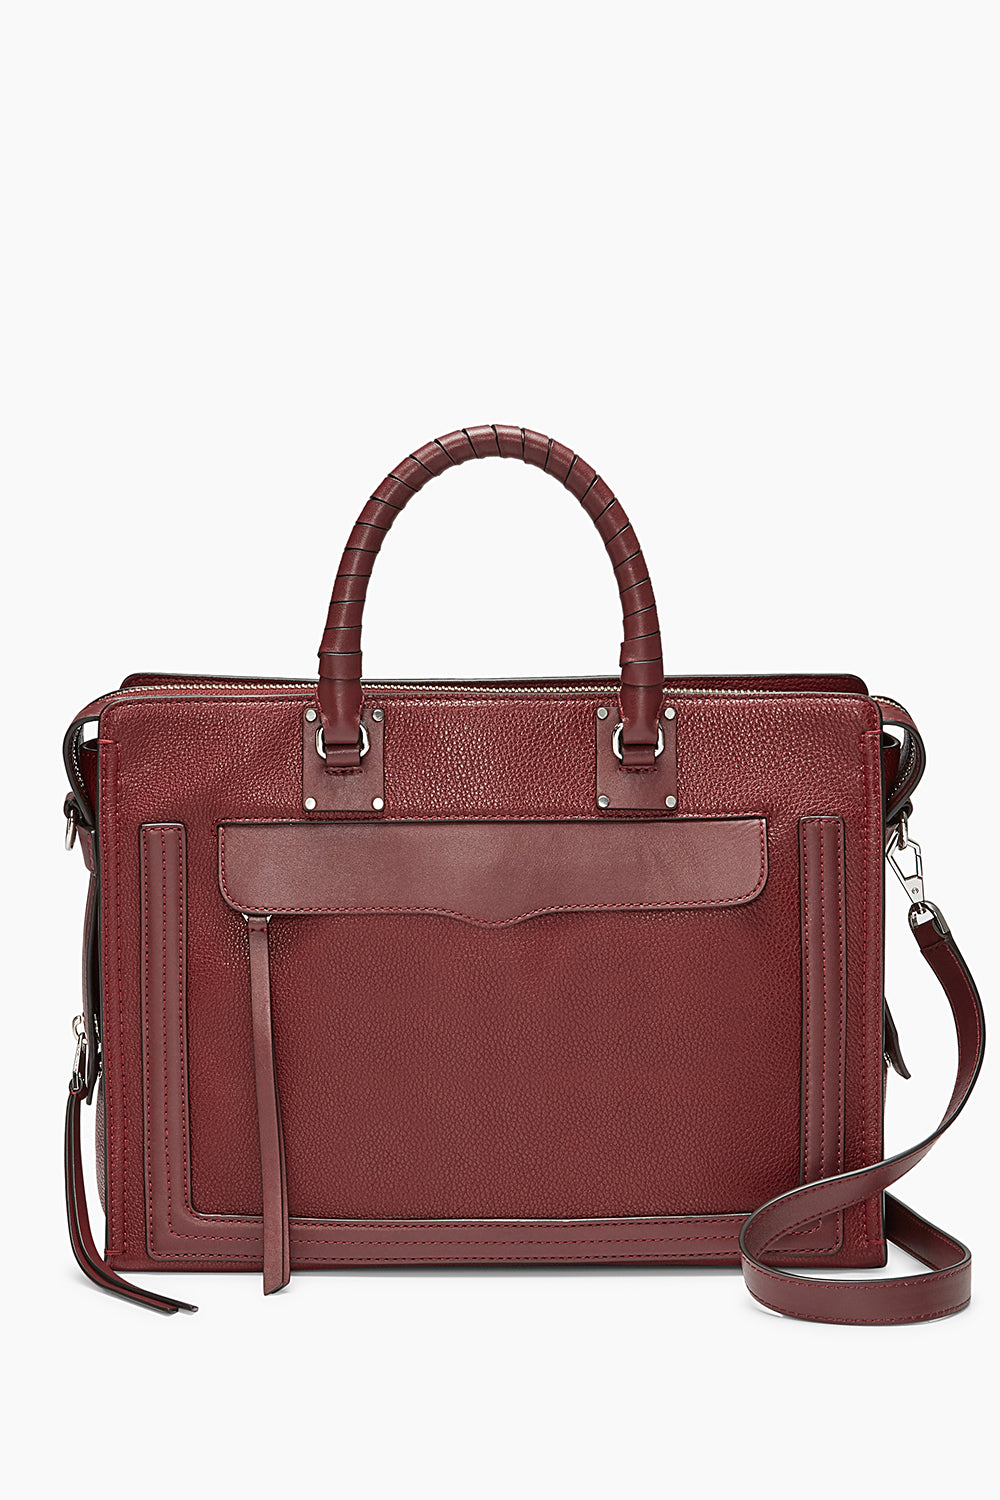 Bree Large Top Zip Satchel